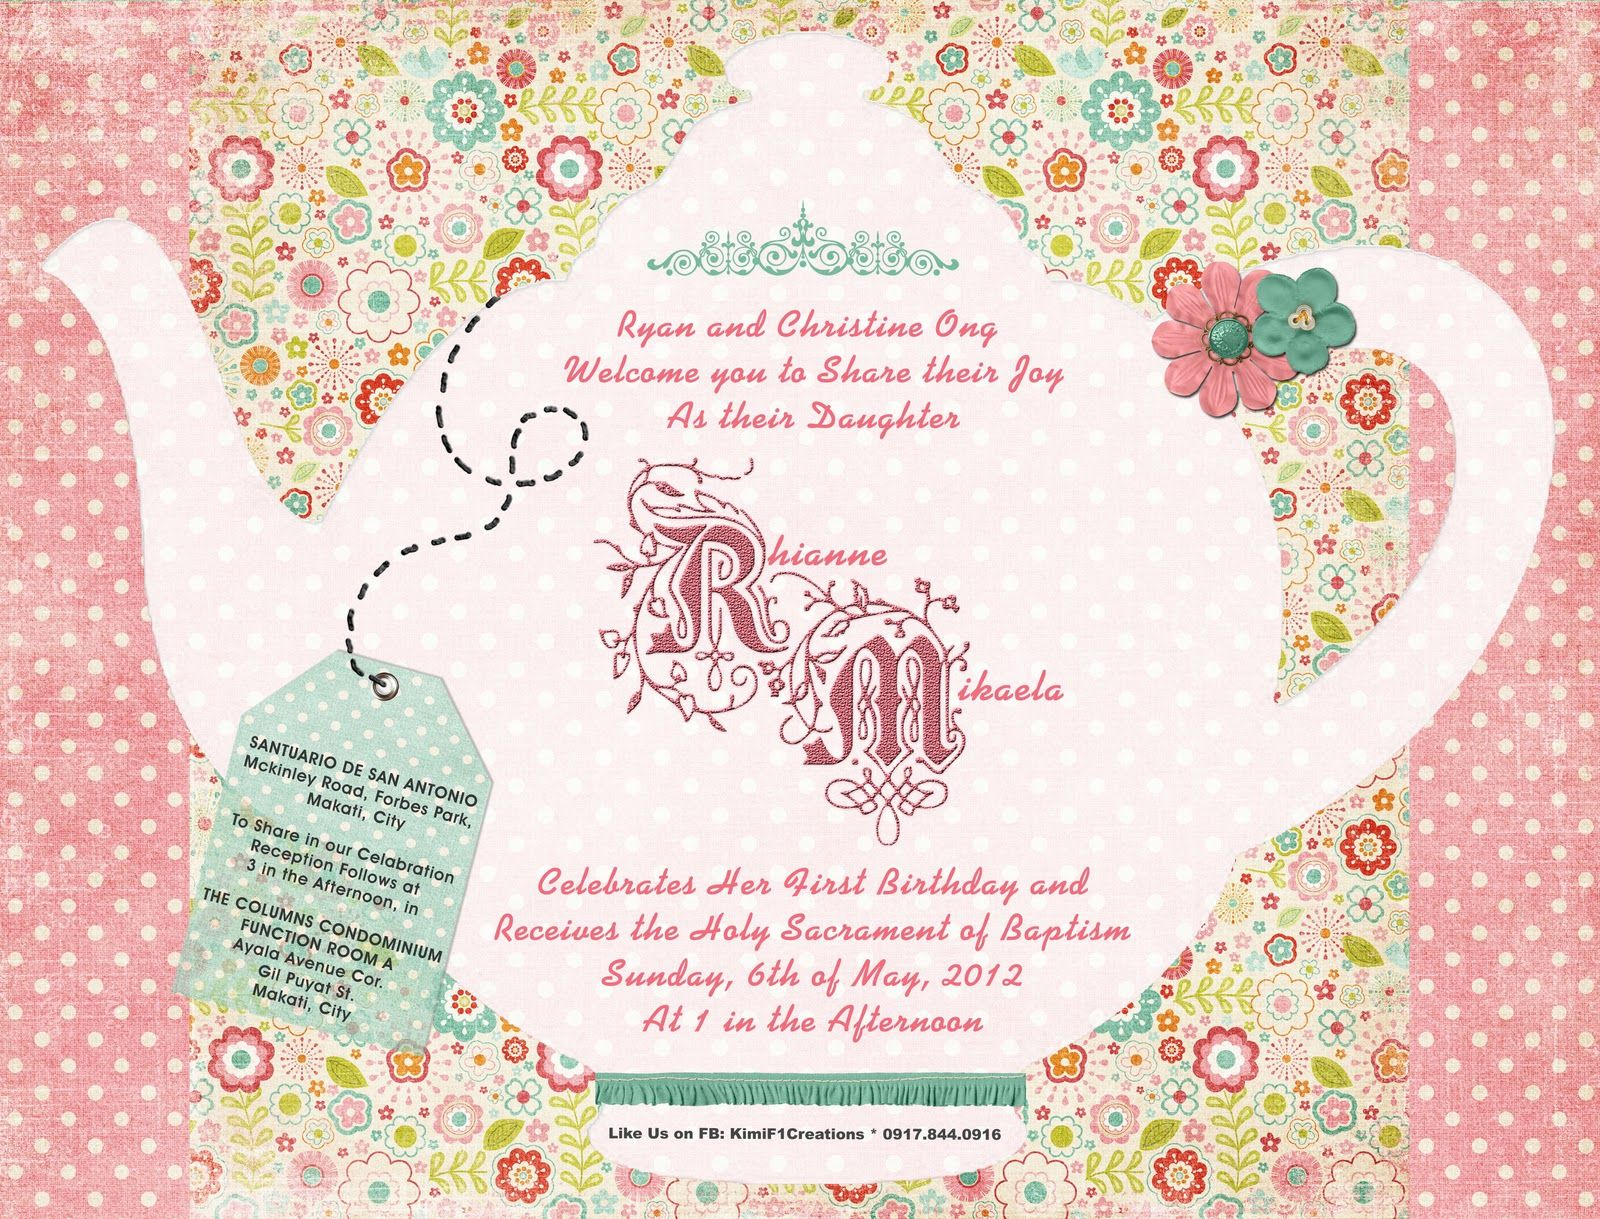 Formal tea party invitation template birthday party dresses hot tea formal tea party invitation template birthday party dresses hot tea party invitations wording ideas formal tea stopboris Choice Image